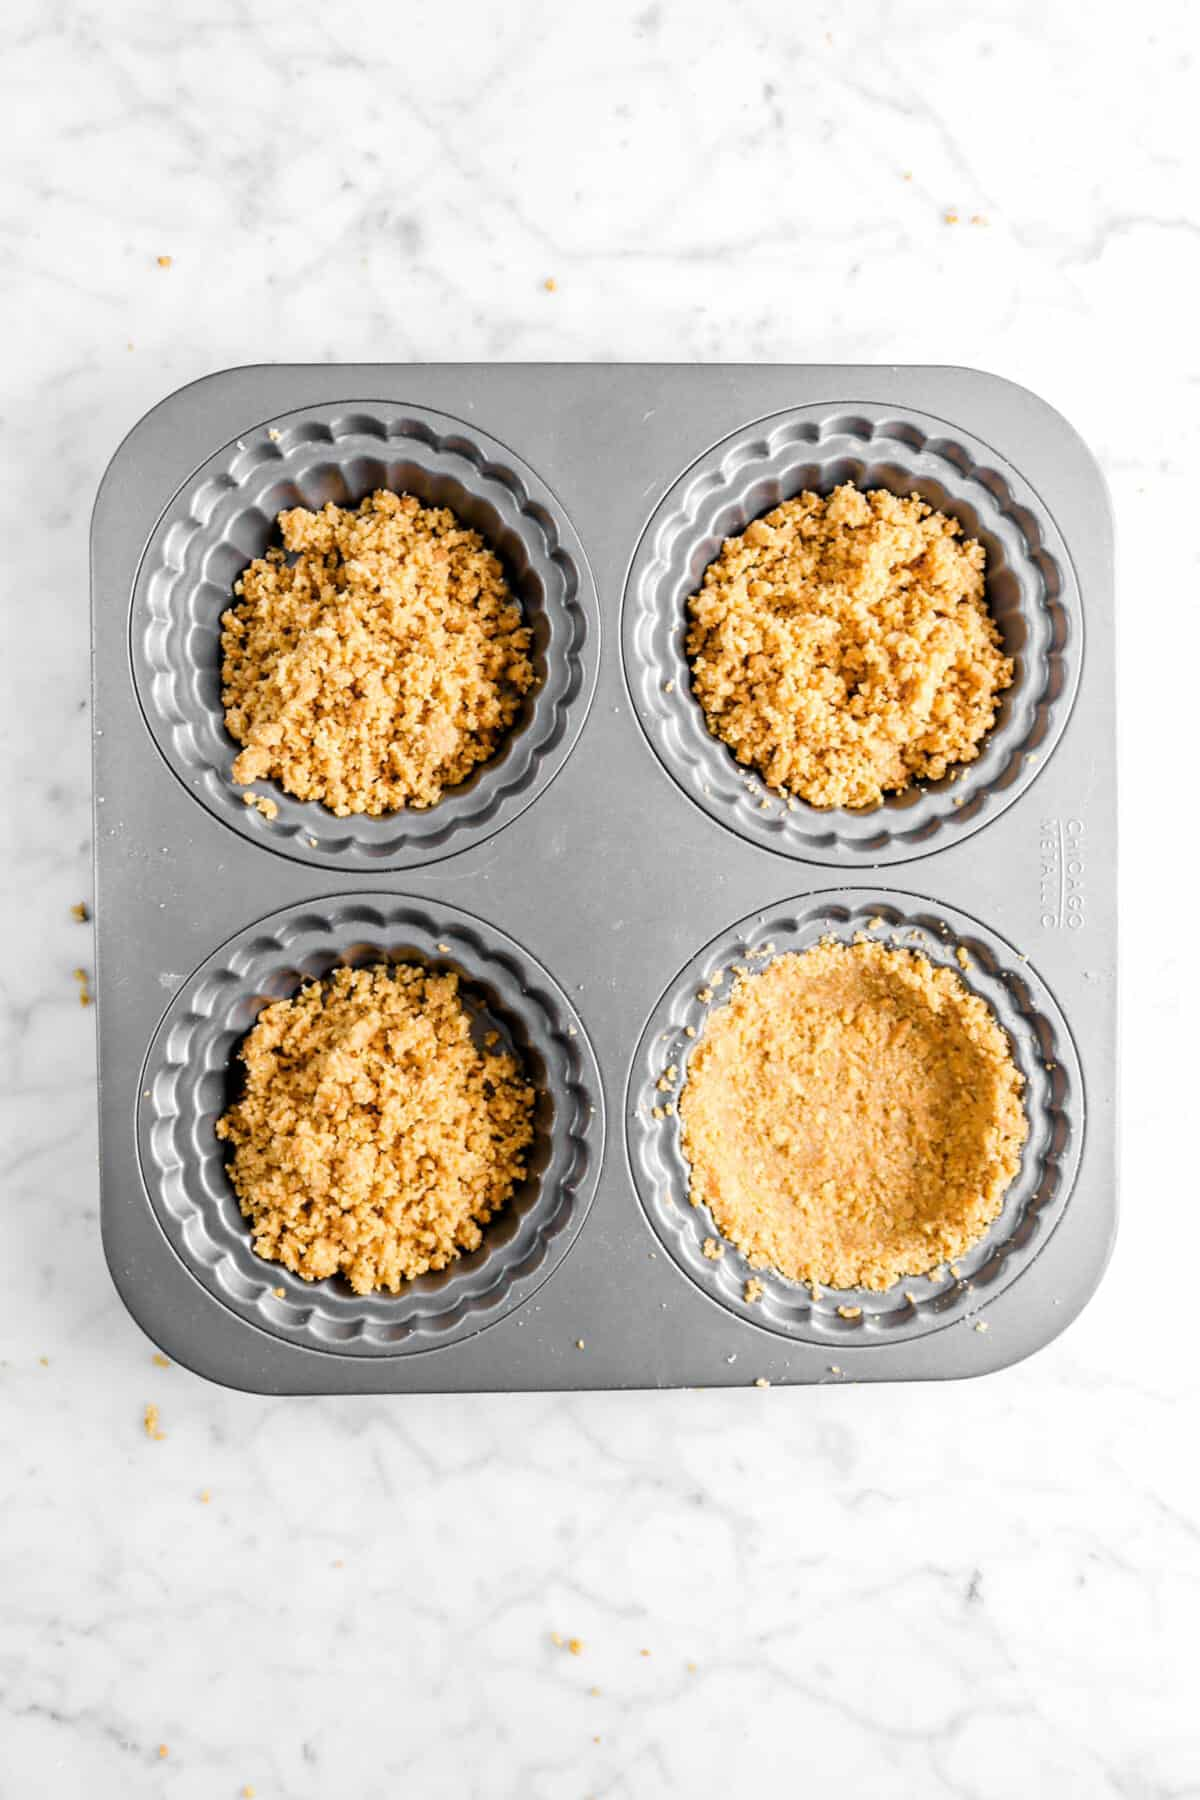 graham cracker crust in small tart pans with one pressed in